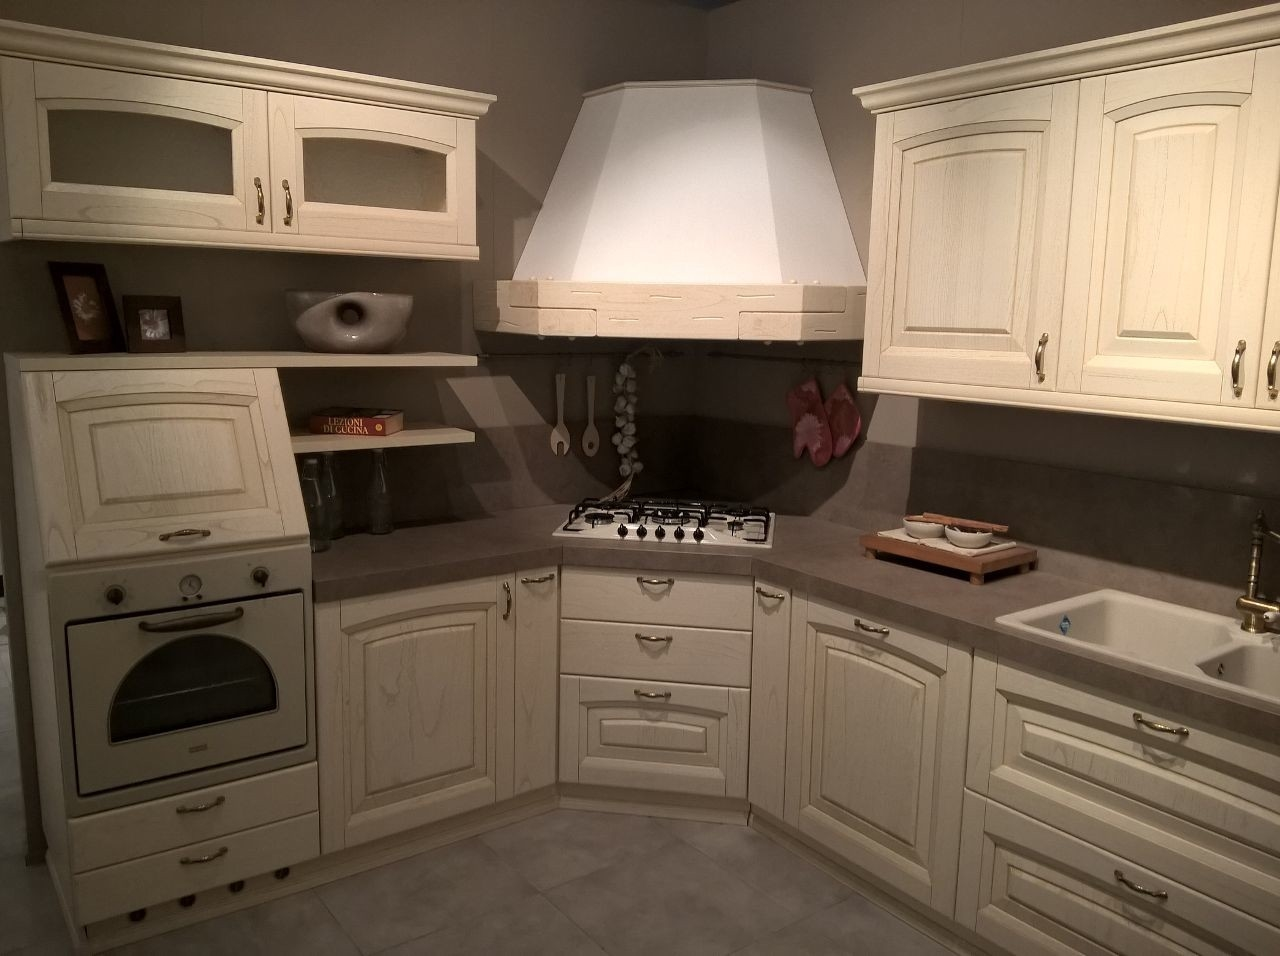 cucina astra cucine ducale country legno